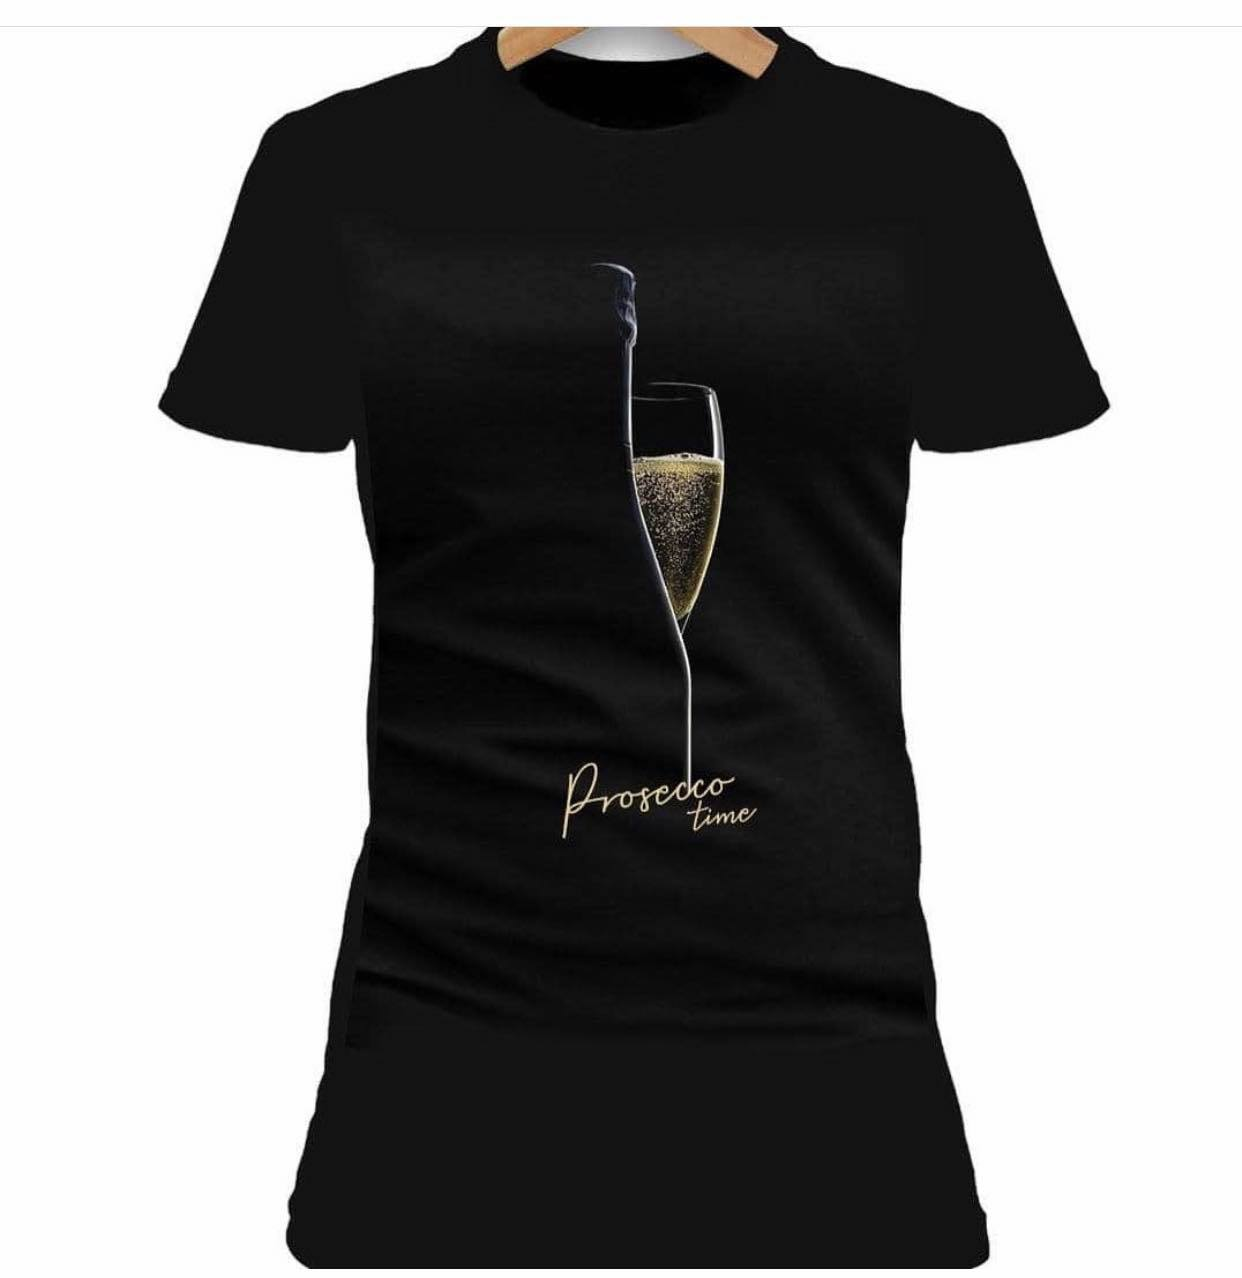 TW Prosecco time